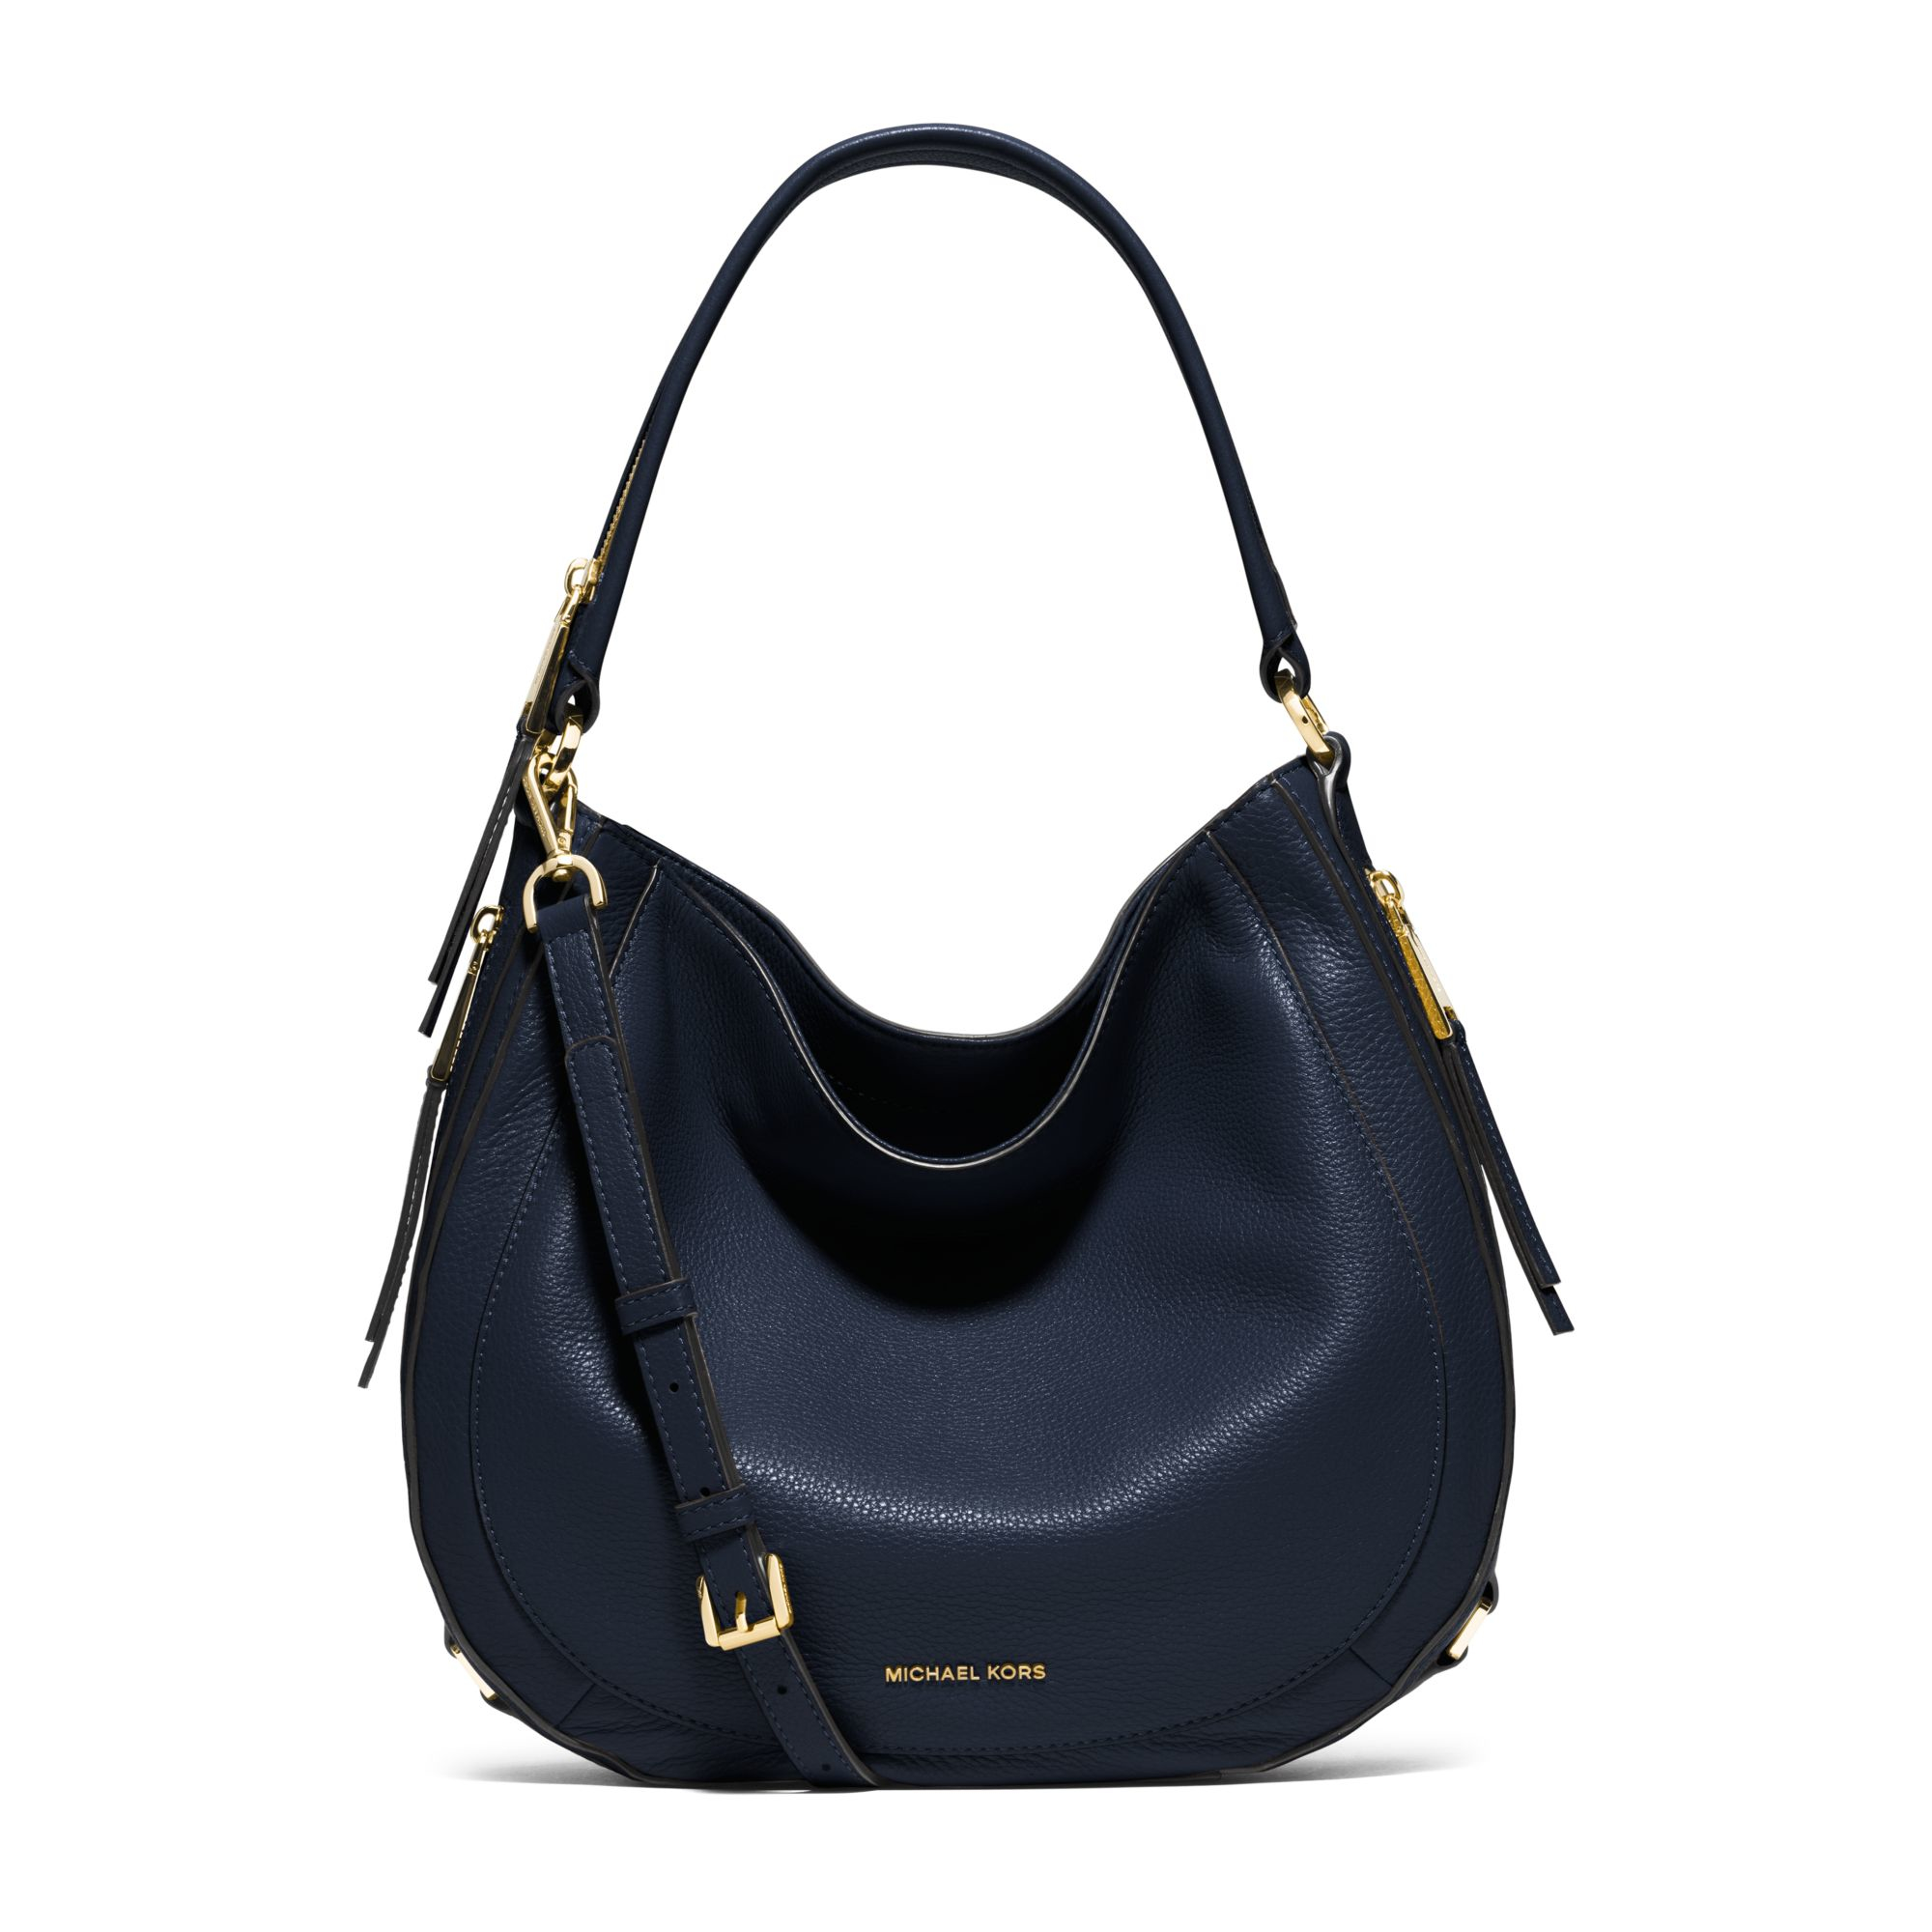 Michael kors Julia Medium Leather Shoulder Bag in Blue | Lyst